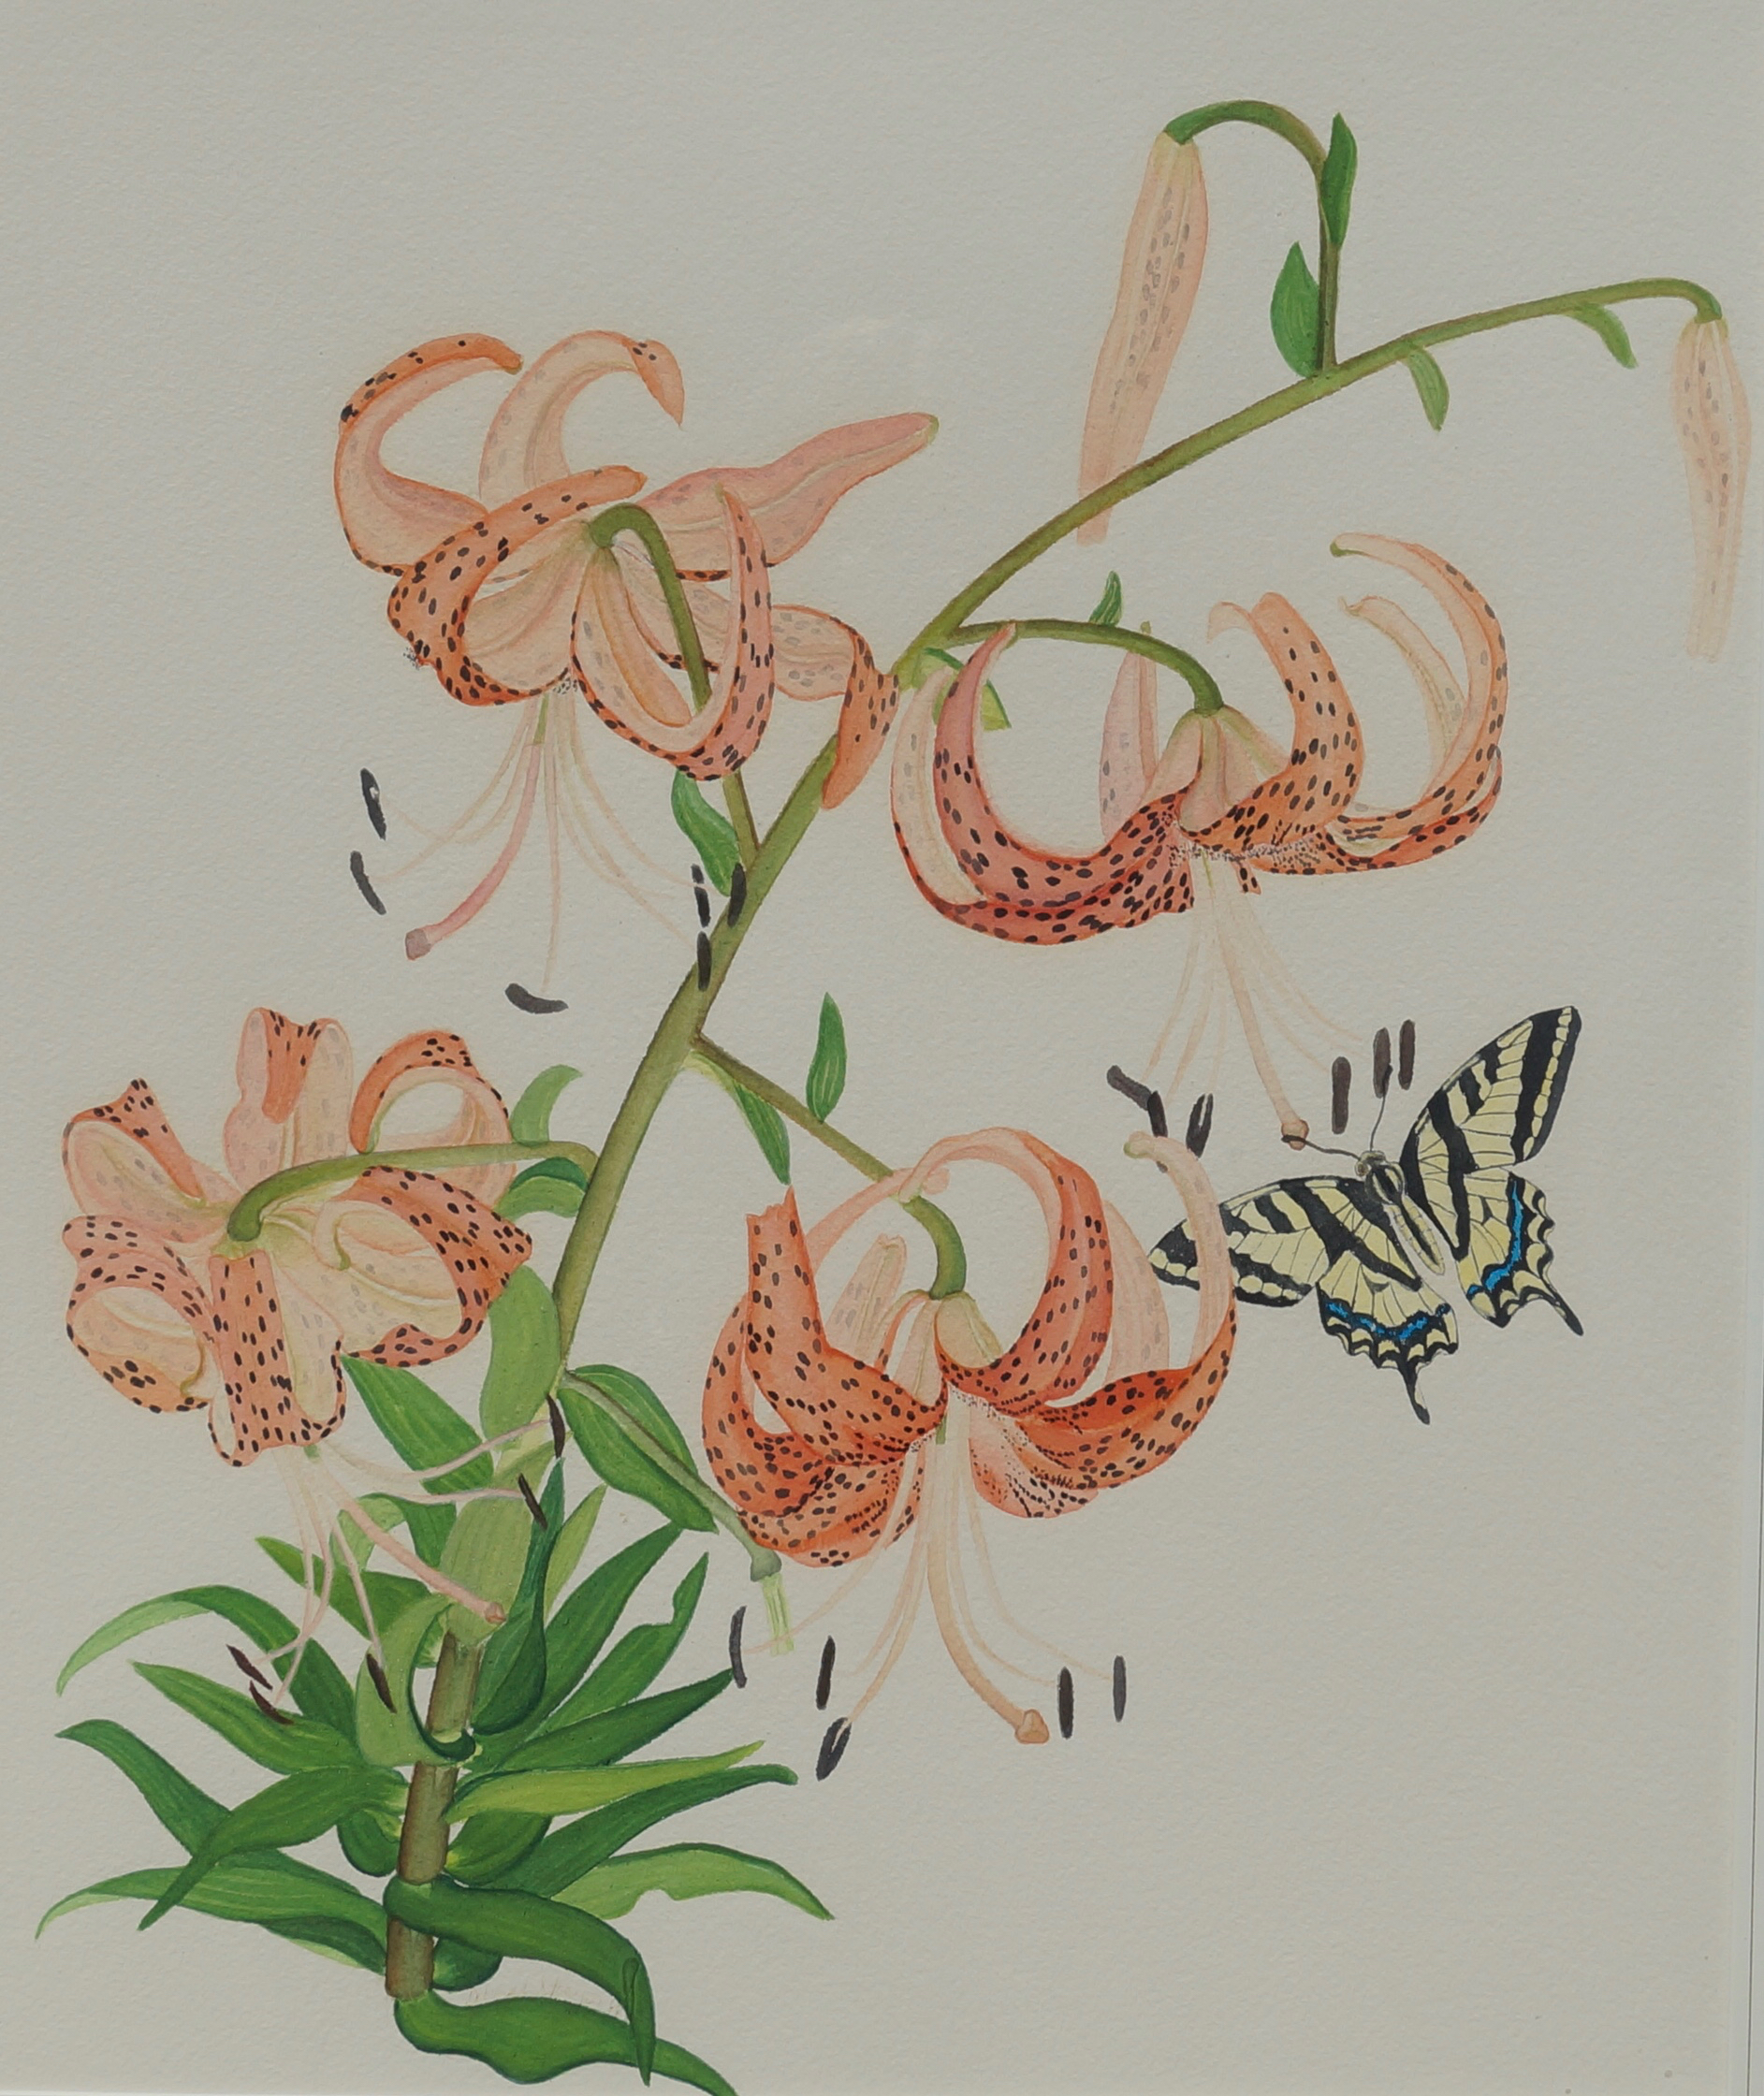 Tiger Lilies and Kite Swallowtail